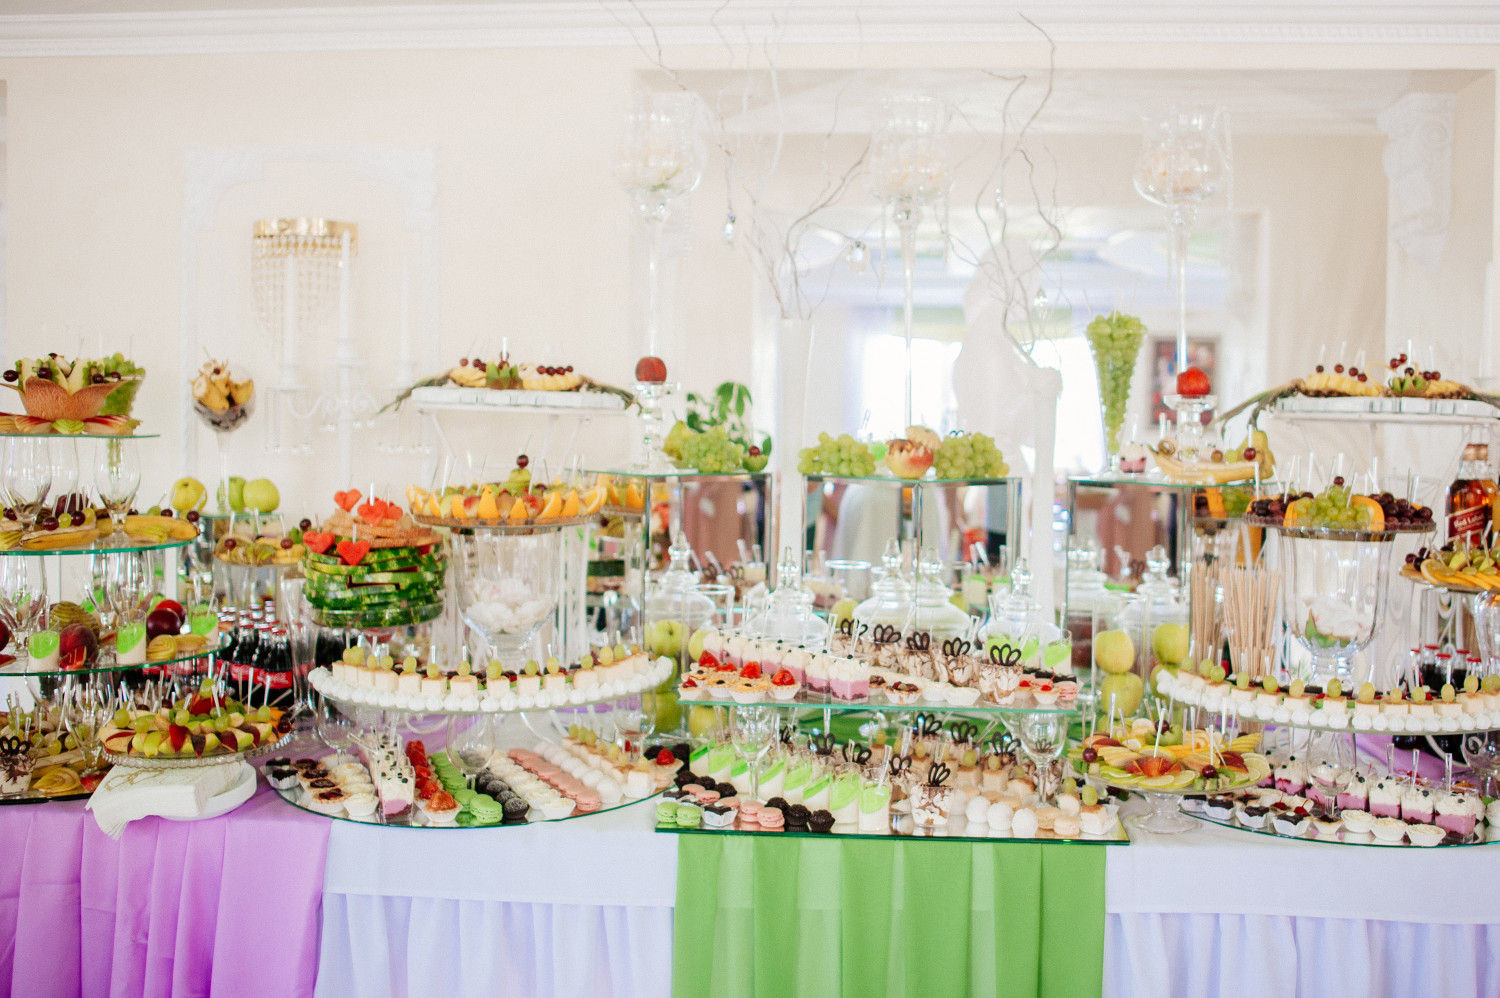 How to Separate Your Wedding Reception From the Rest